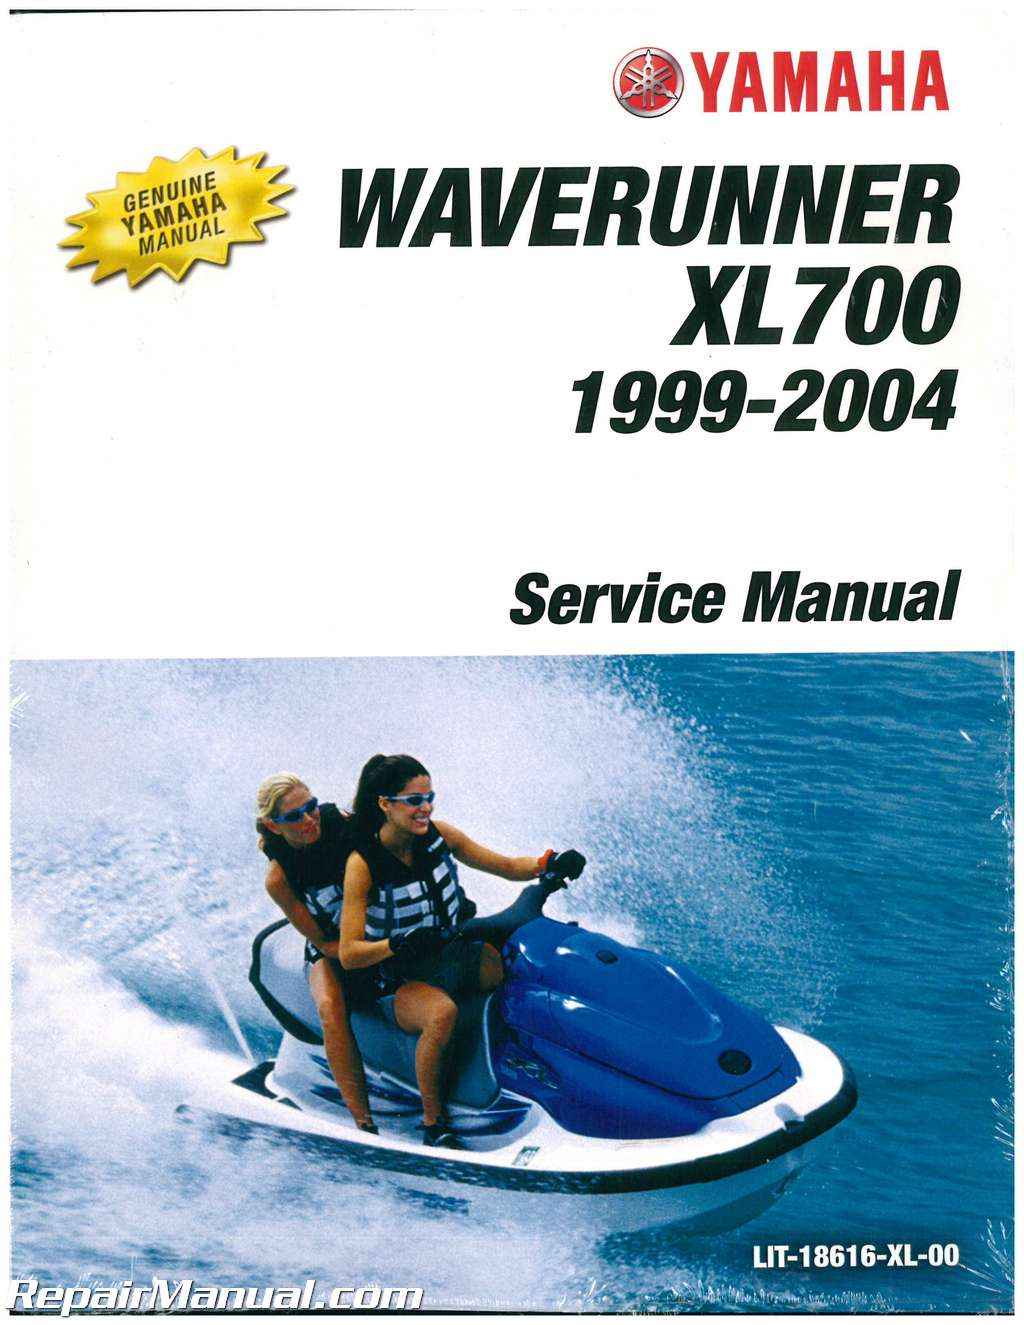 1999 2004 yamaha xl700 xl760 waverunner service manual rh repairmanual com 1993 yamaha jet ski manual yamaha jet ski repair manual